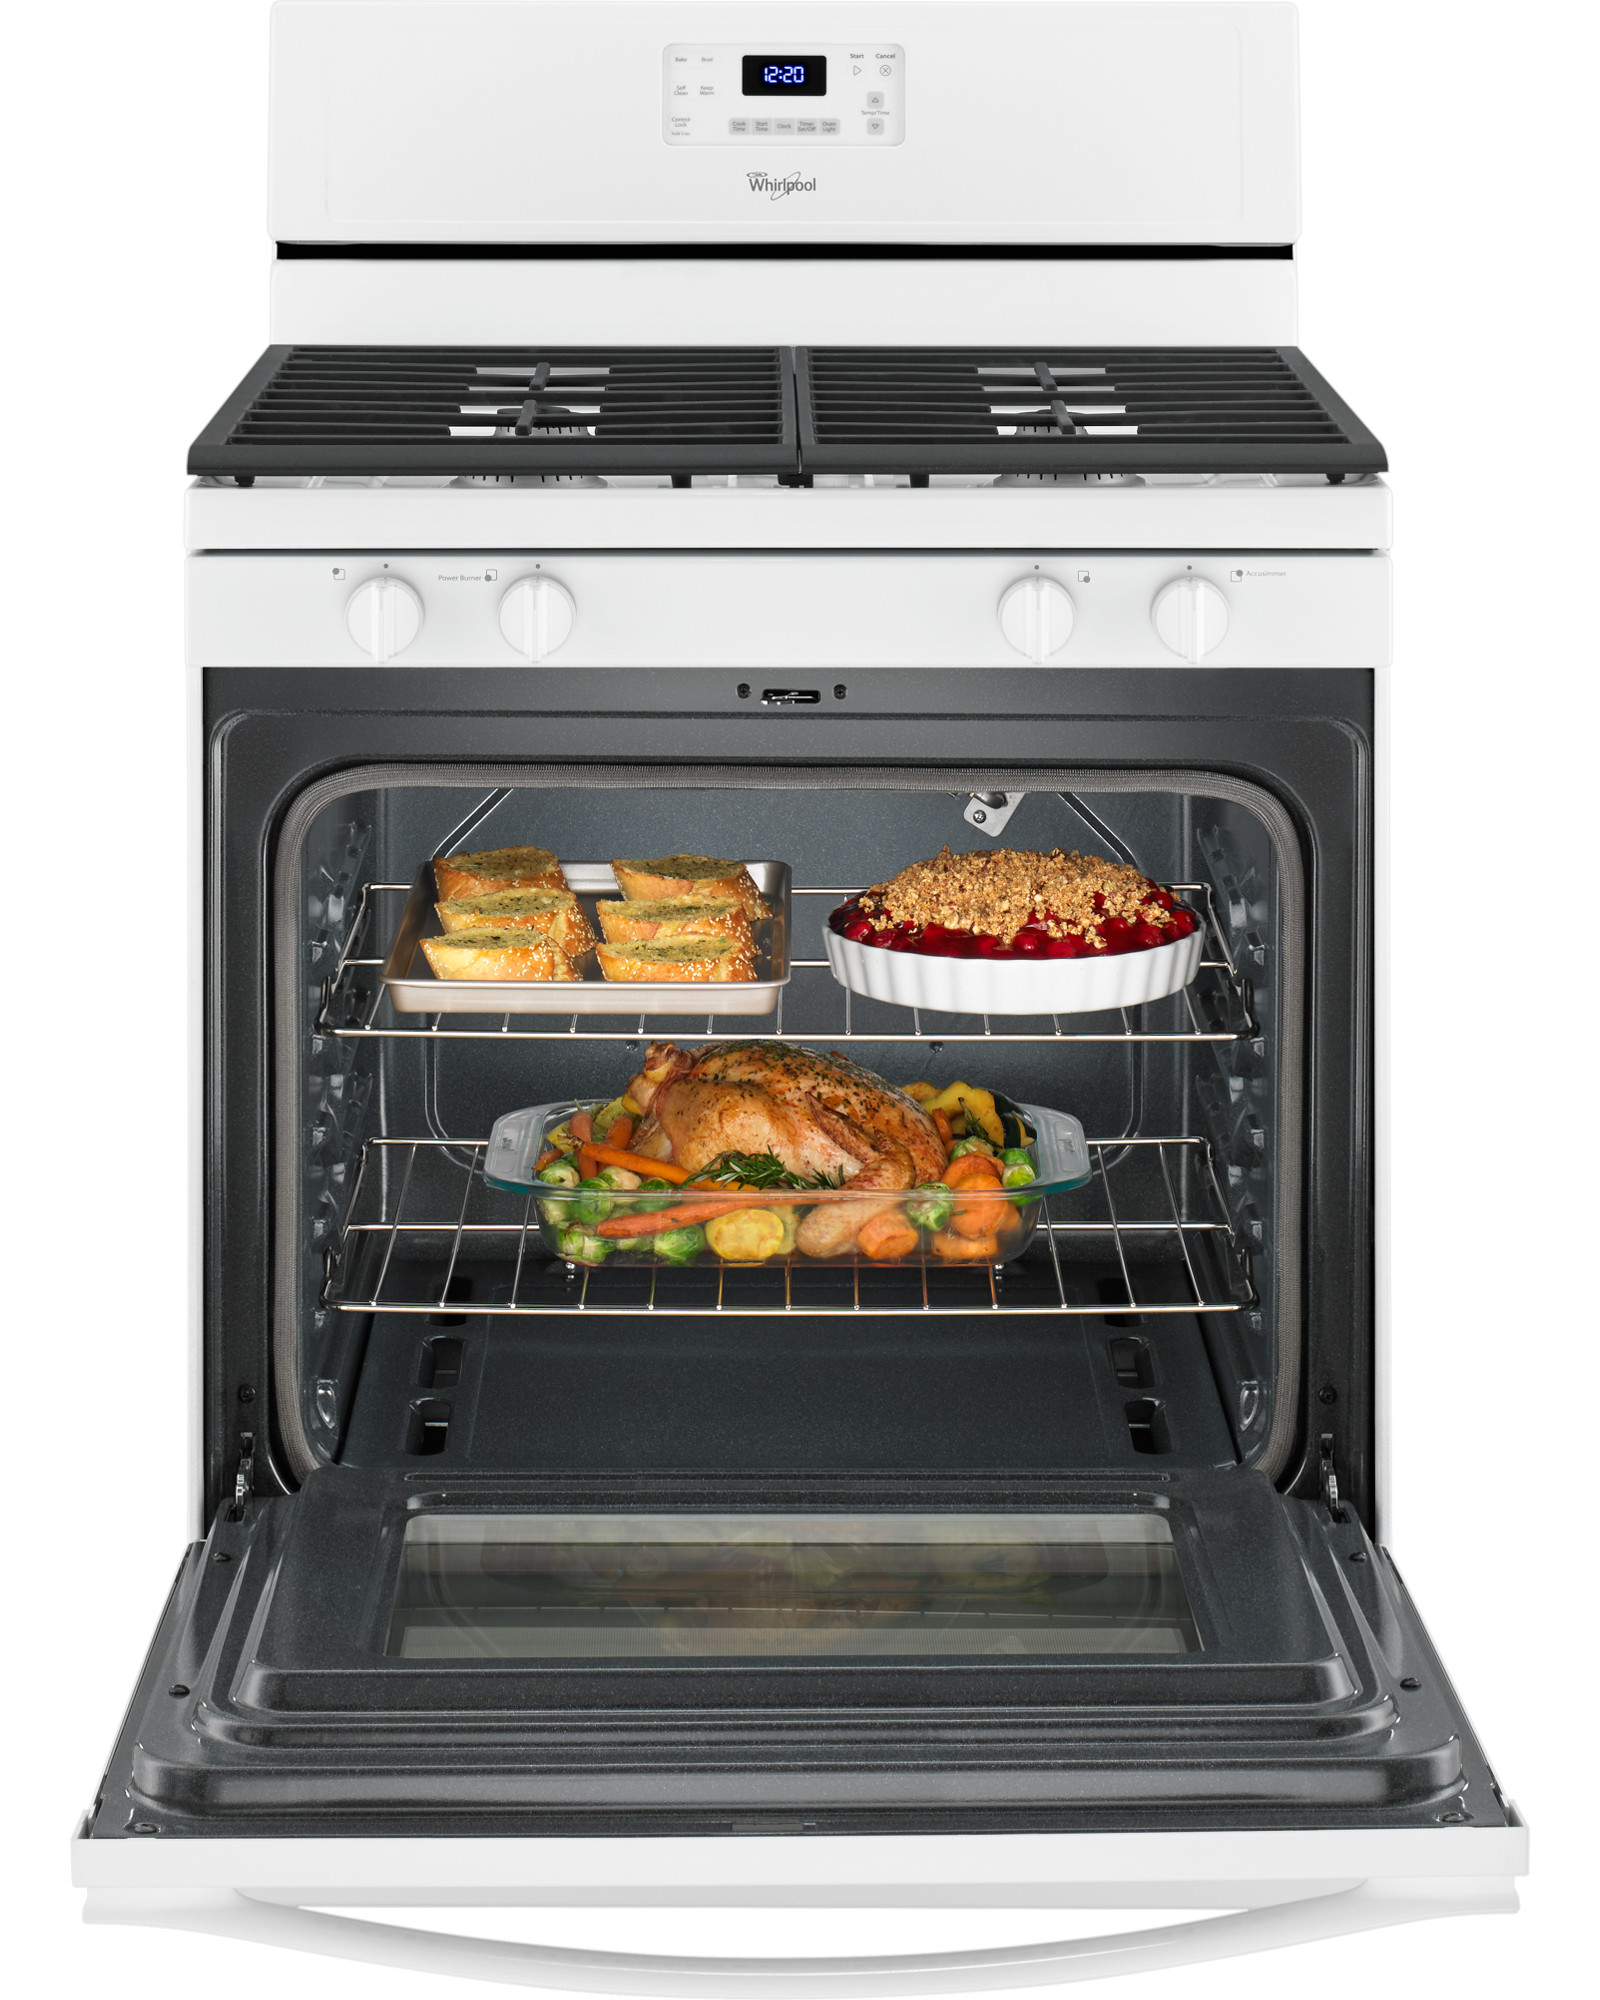 Whirlpool WFG515S0EW 5.0 cu. ft. Freestanding Gas Range - White